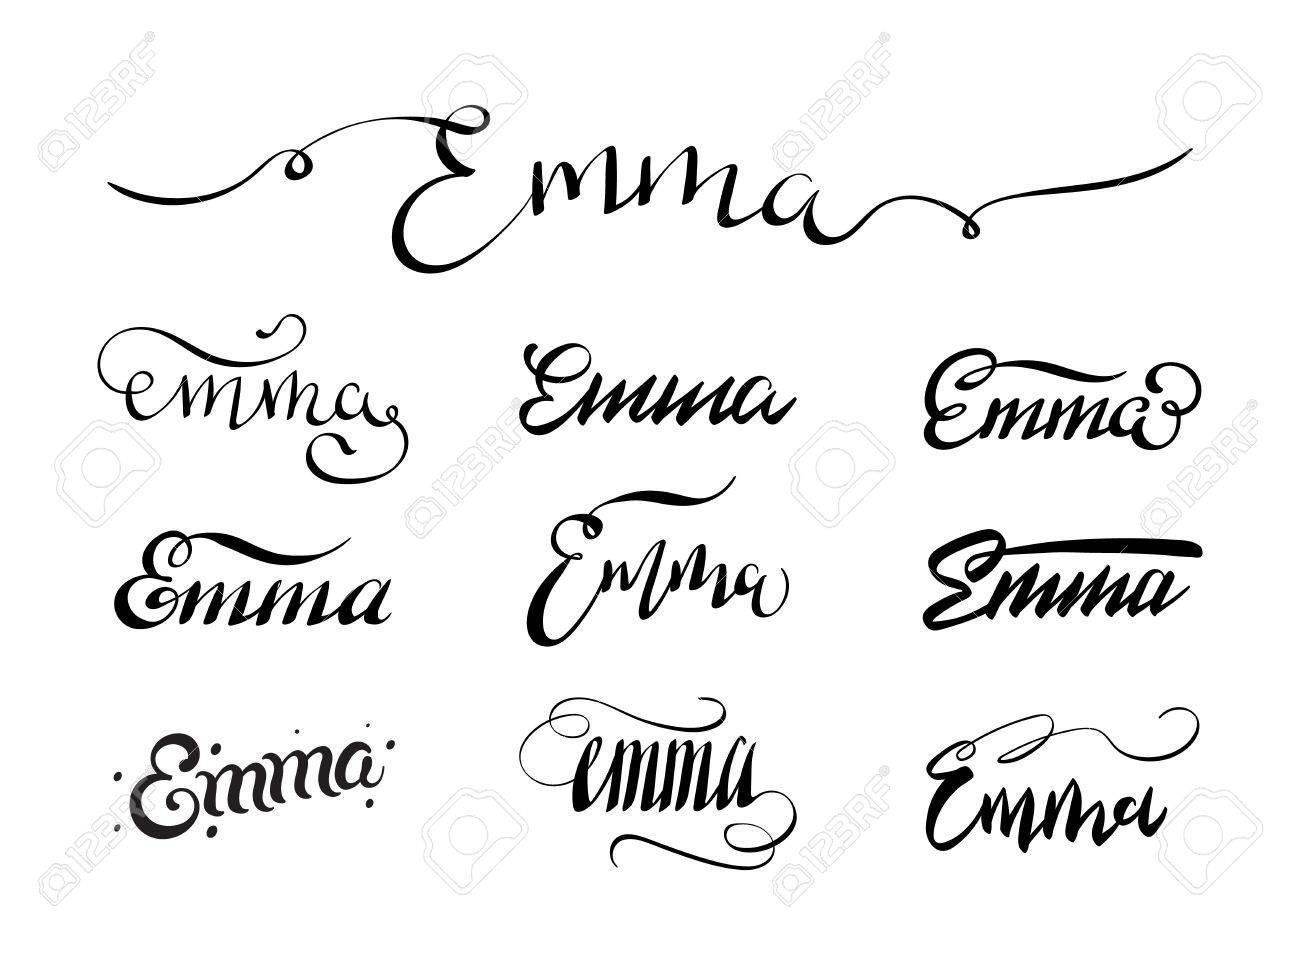 Calligraphy Tattoo Picture Personal Name Emma Vector Handwritten Calligraphy Tattoo Design